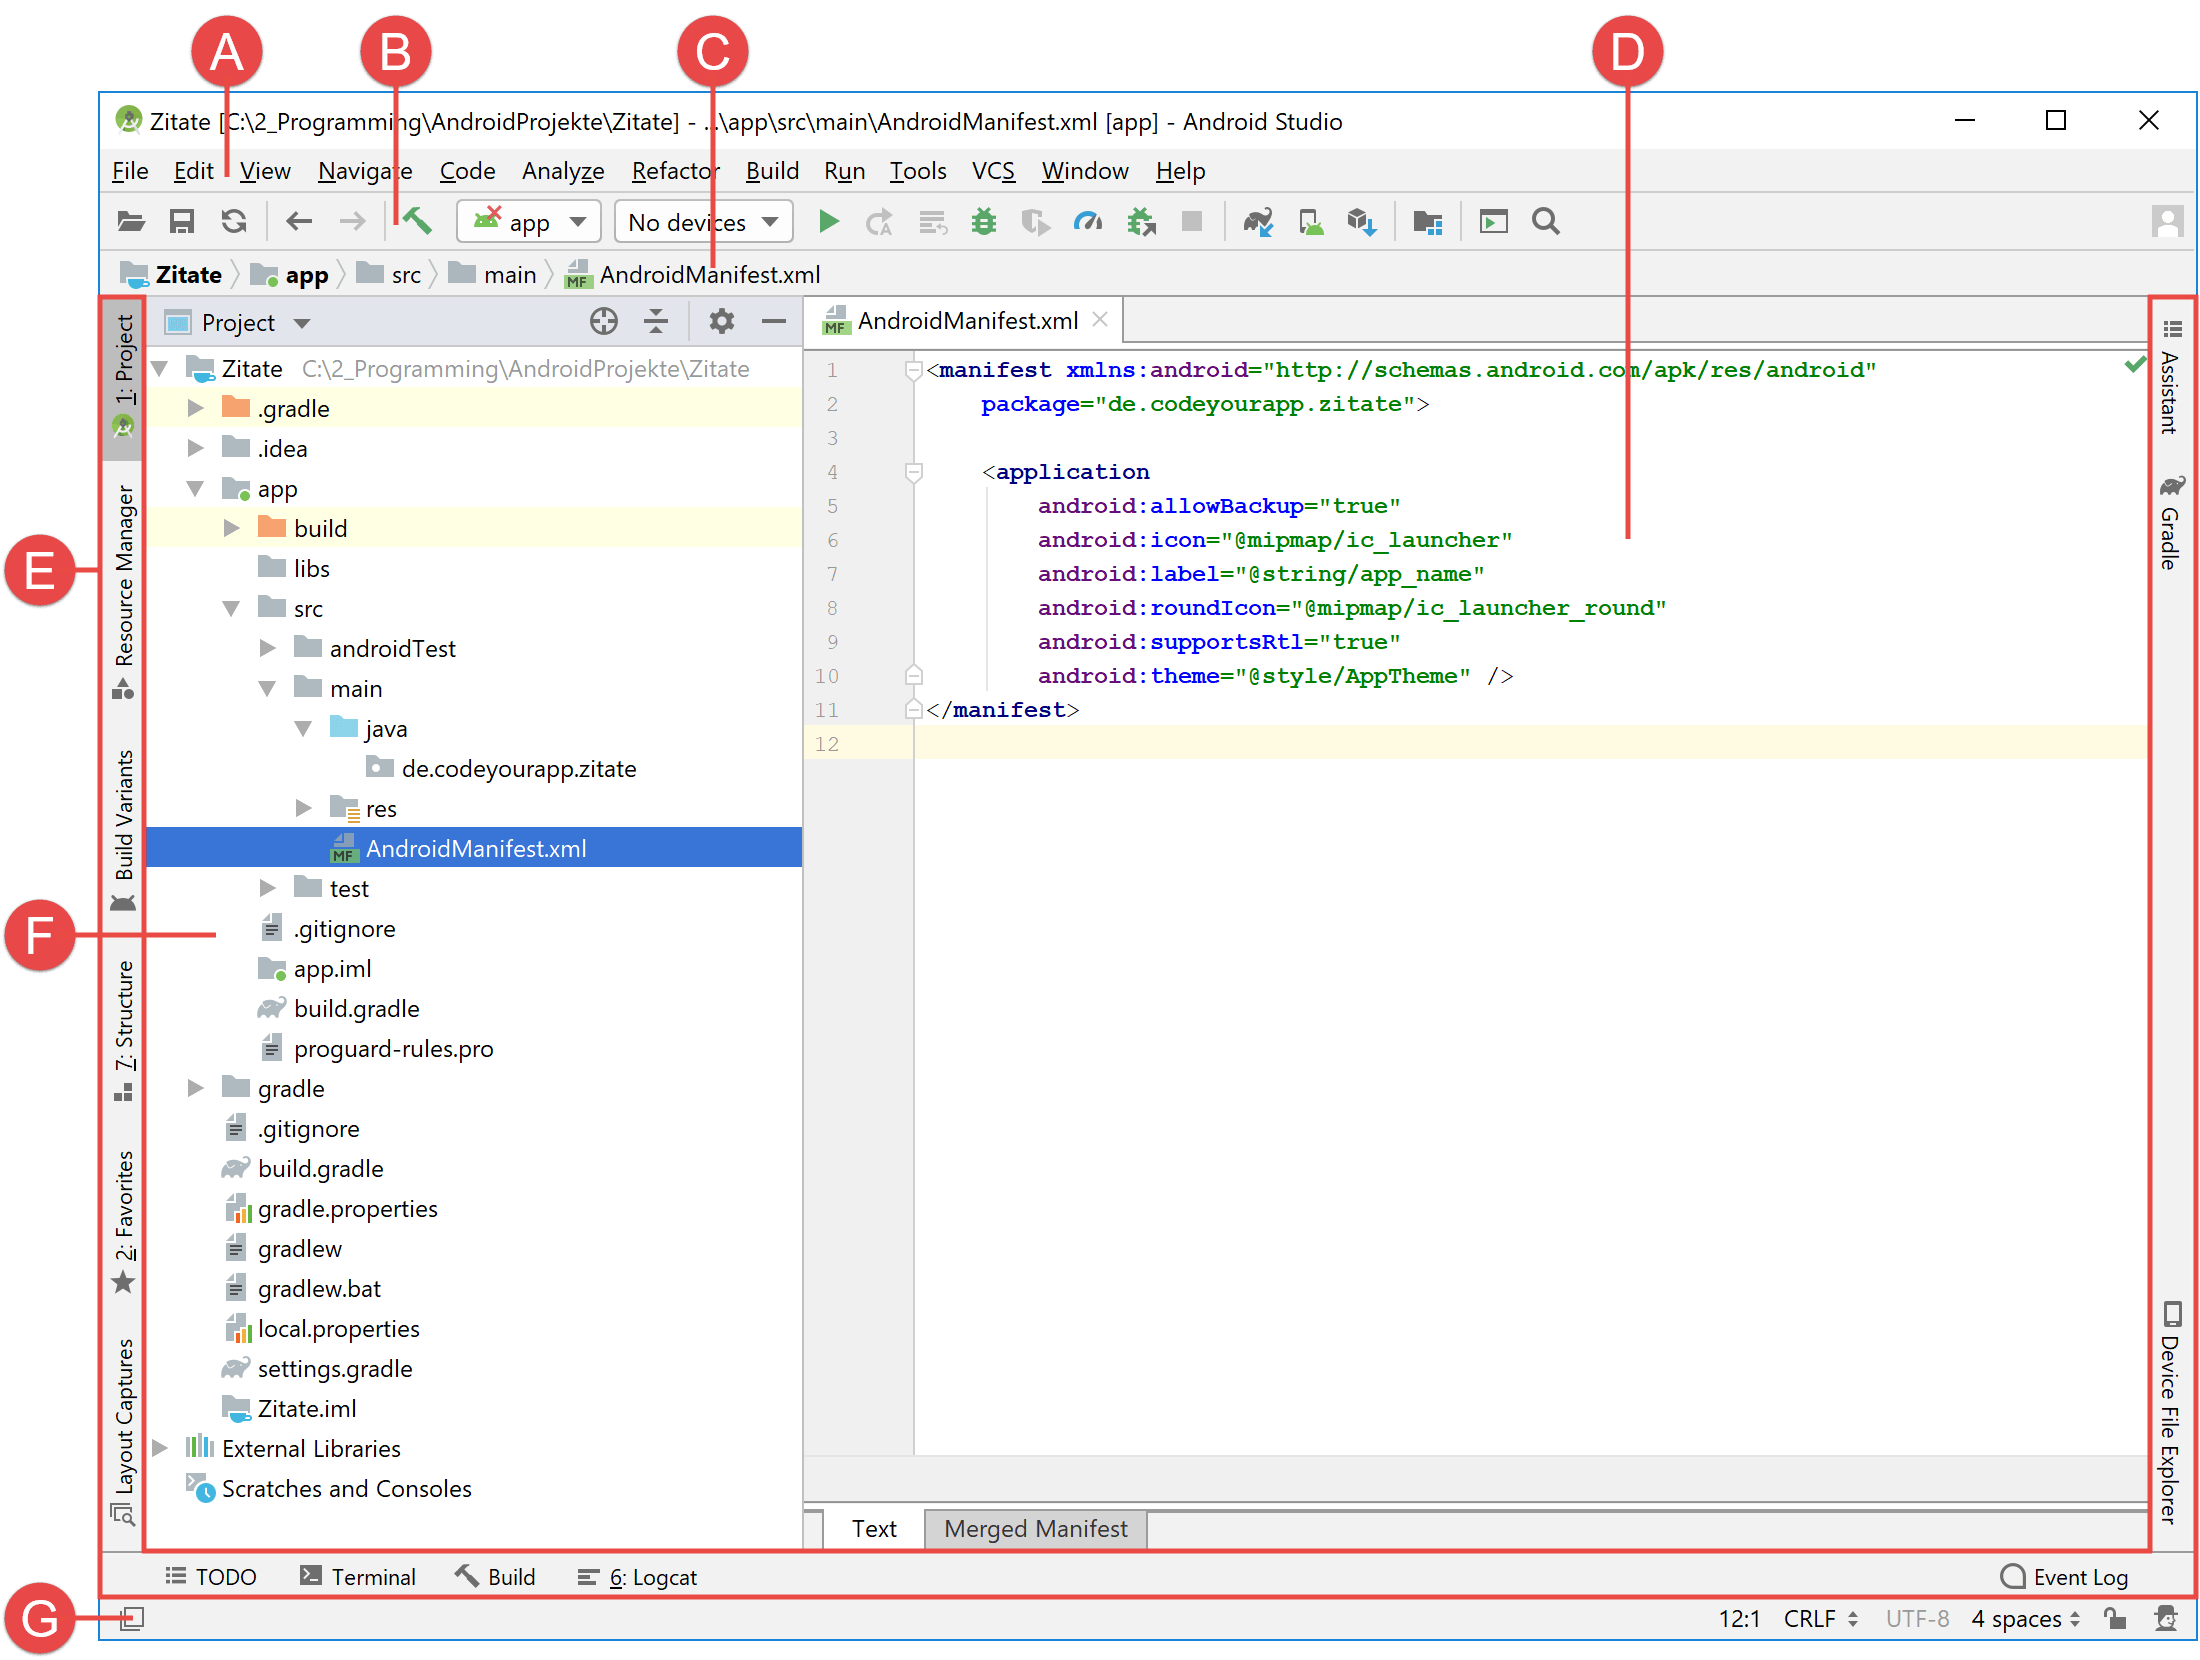 android_studio_user_interface